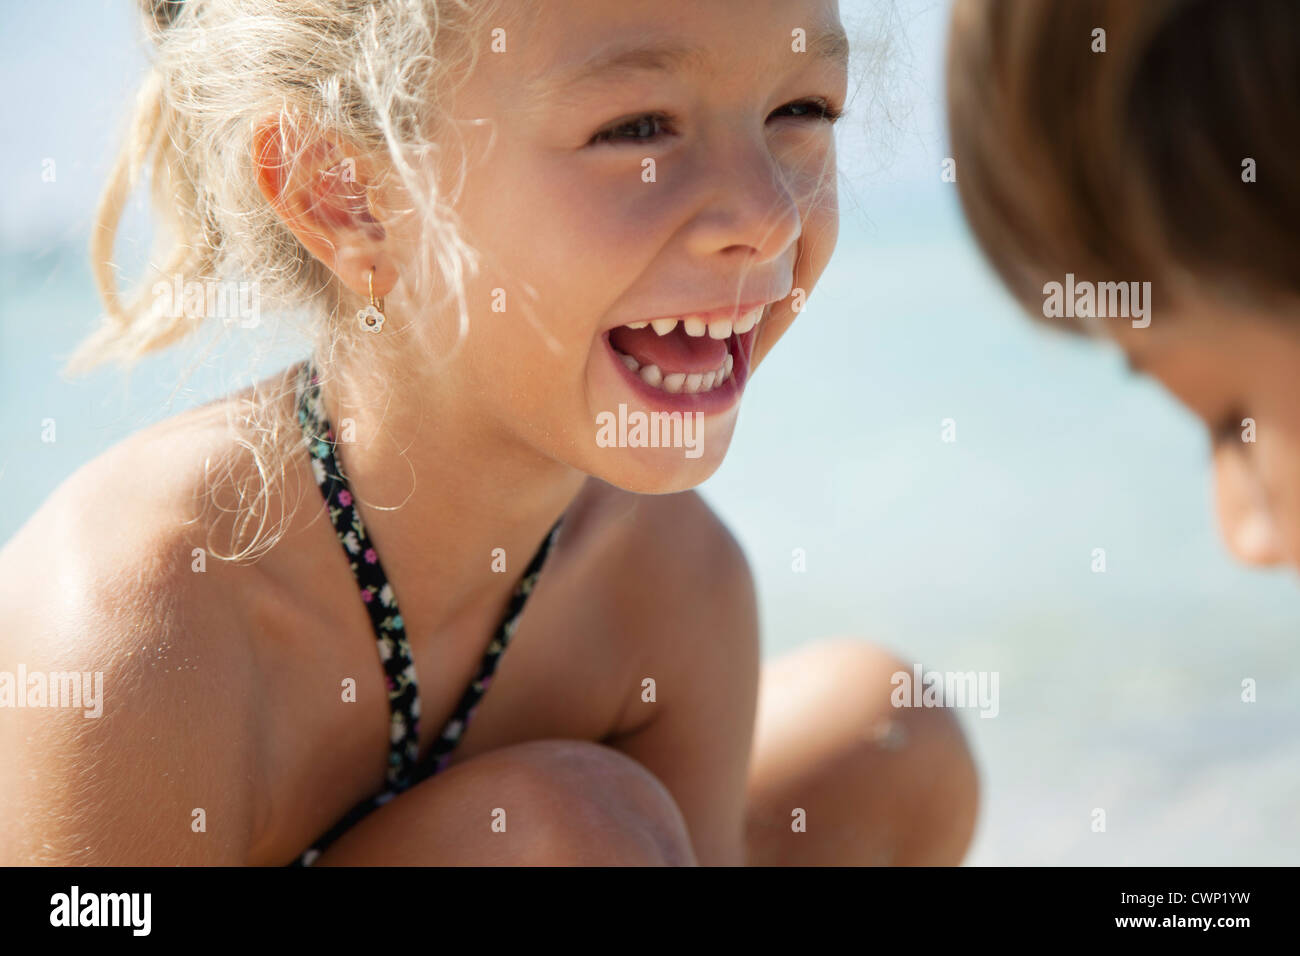 Girl laughing outdoors Photo Stock